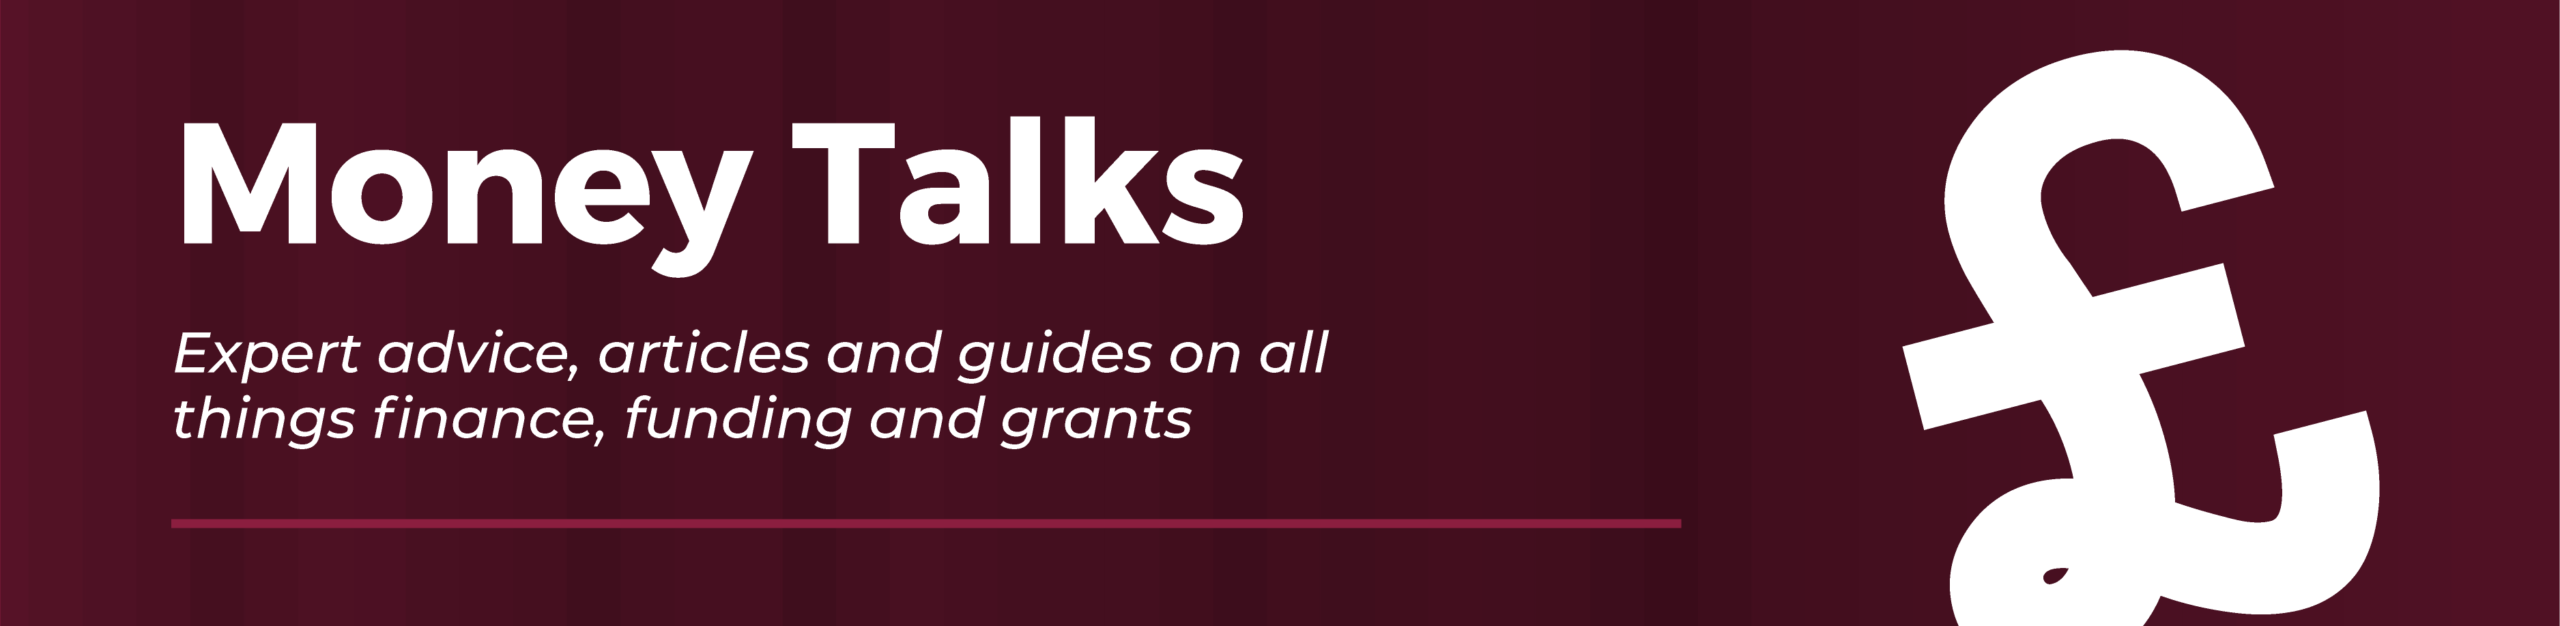 Money Talks. Expert advice, articles and guides on all things finance, funding and grants.